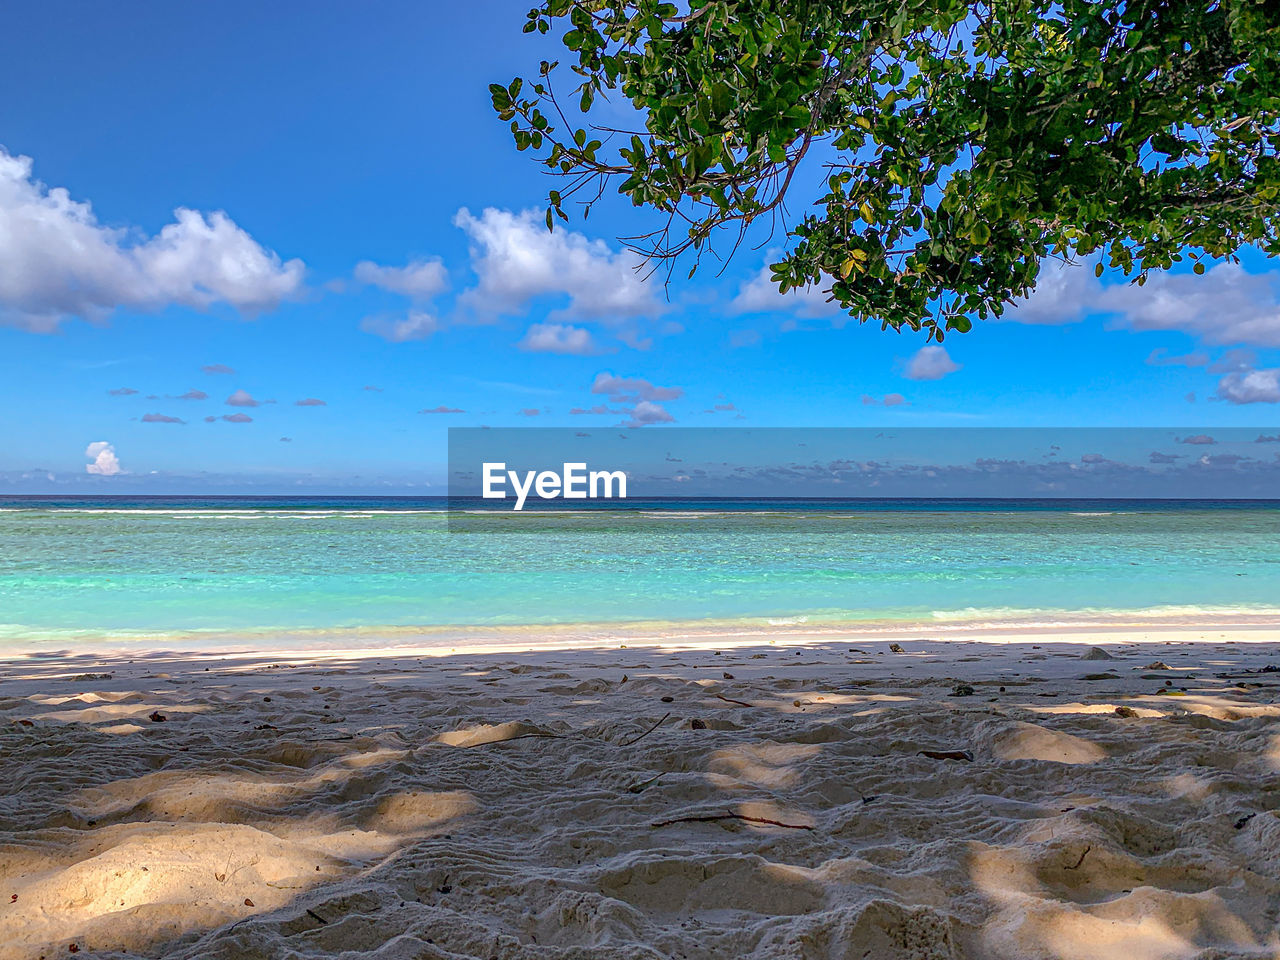 sky, water, sea, beauty in nature, scenics - nature, tranquil scene, land, horizon over water, tranquility, beach, cloud - sky, blue, horizon, nature, no people, idyllic, non-urban scene, day, tropical climate, outdoors, turquoise colored